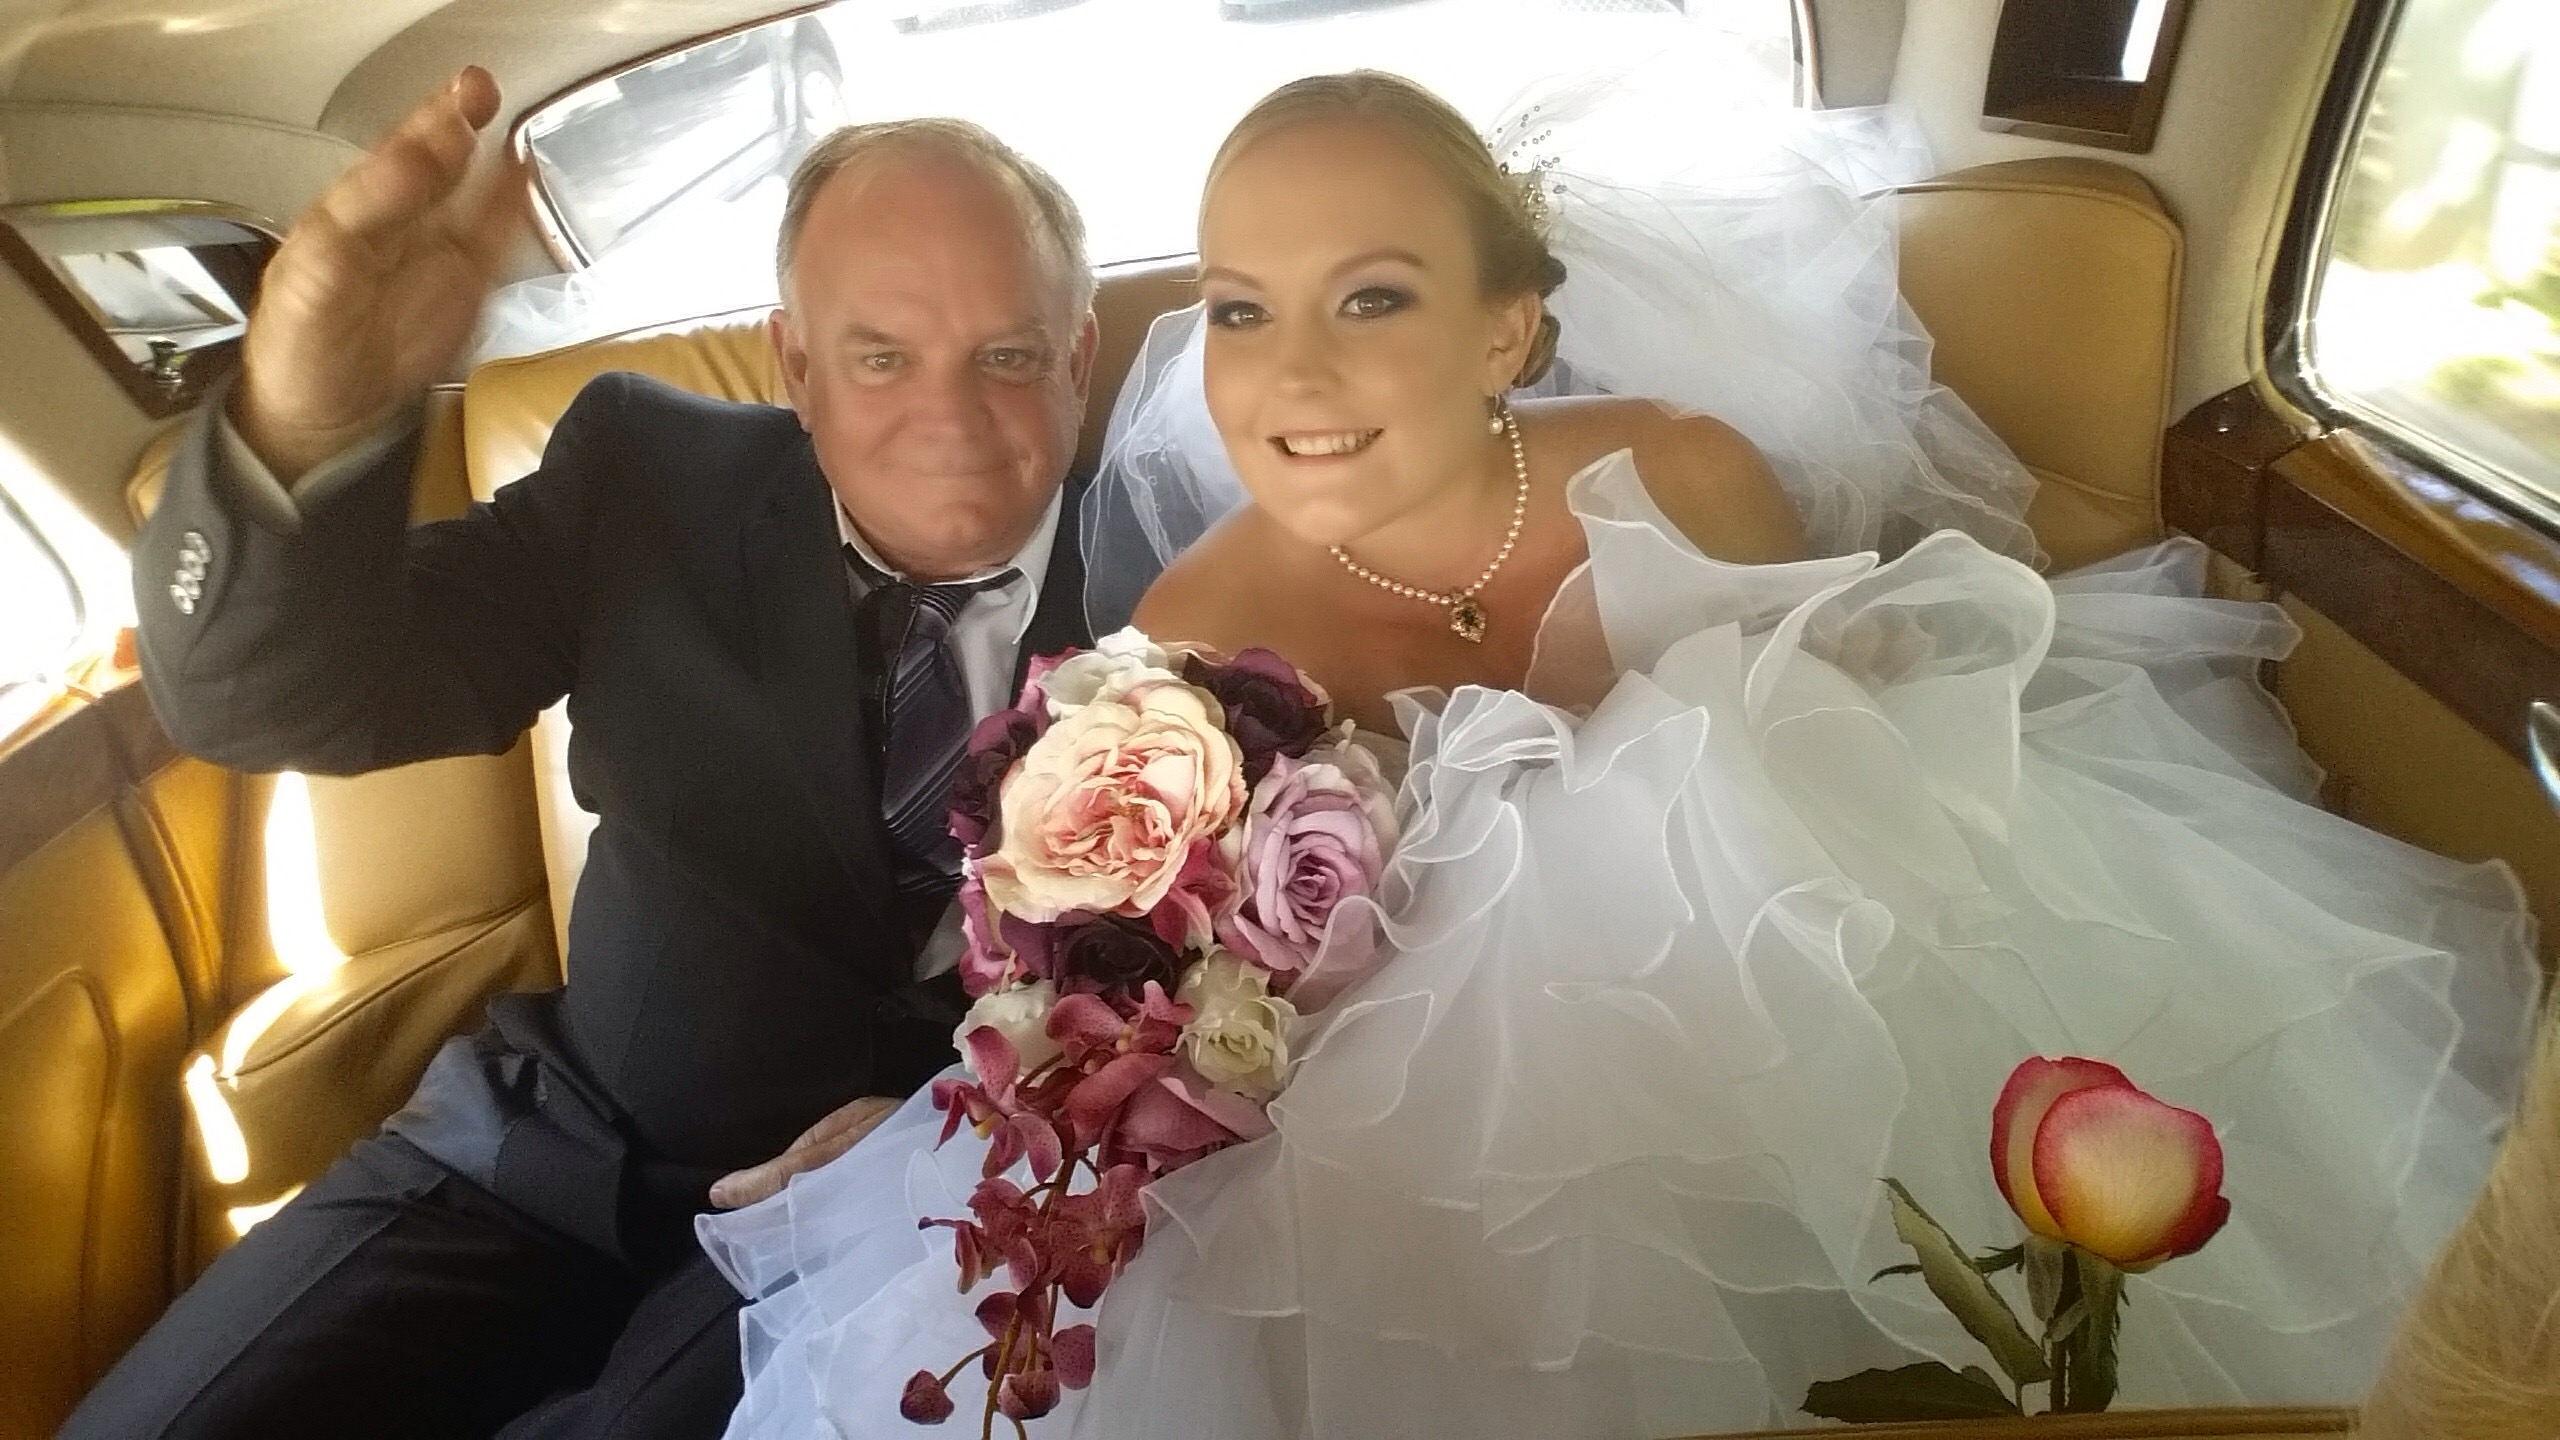 Glowing Bride Krystyna and her Dad!